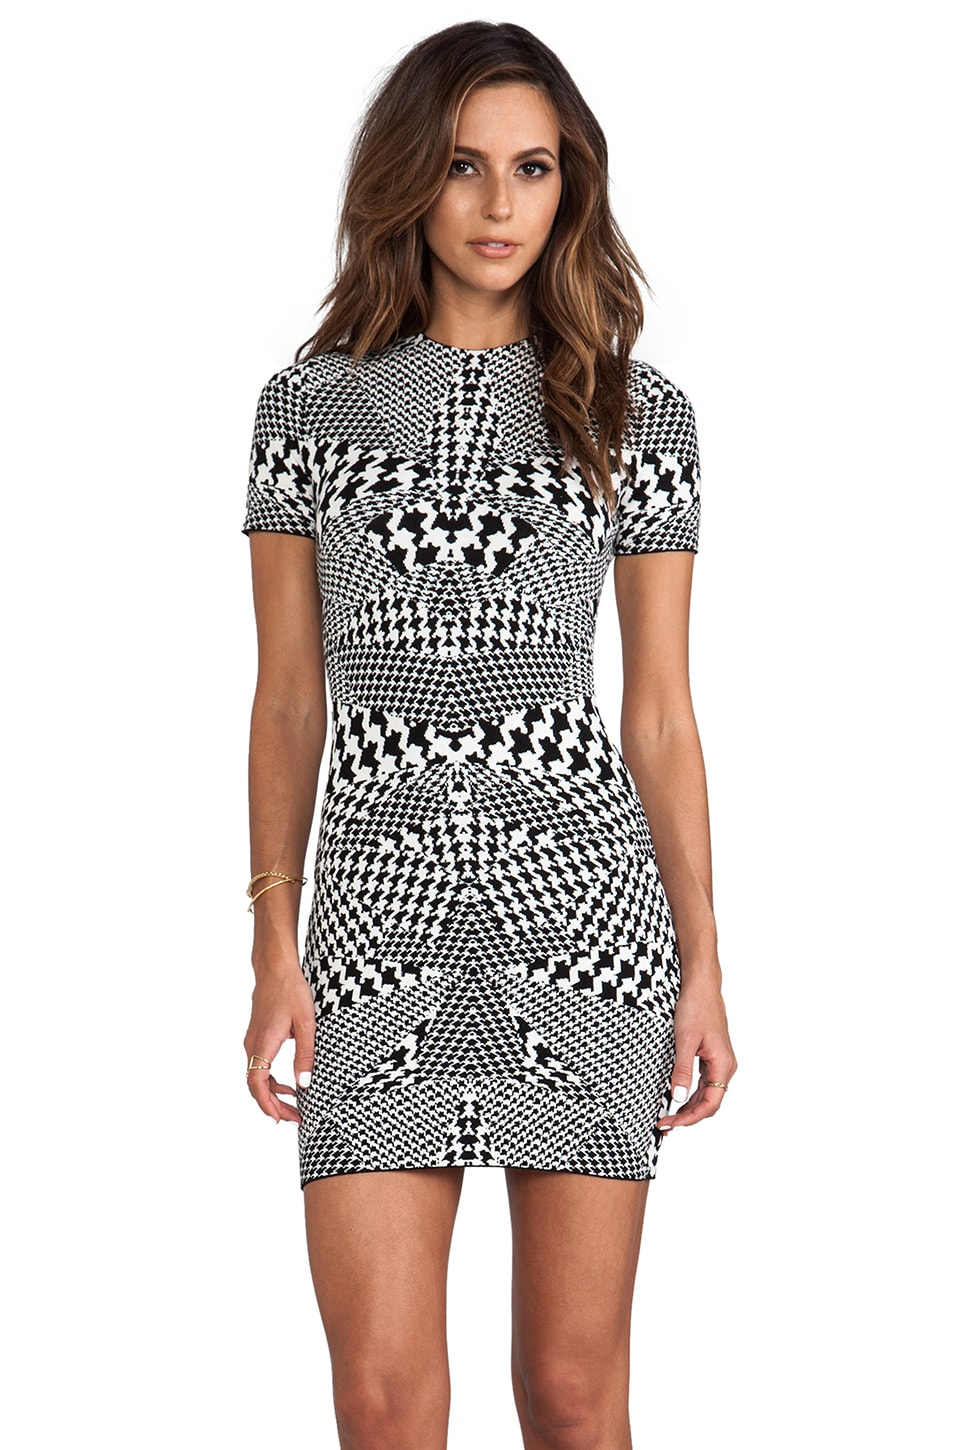 McQ Alexander McQueen Bodycon Dress in Black & White